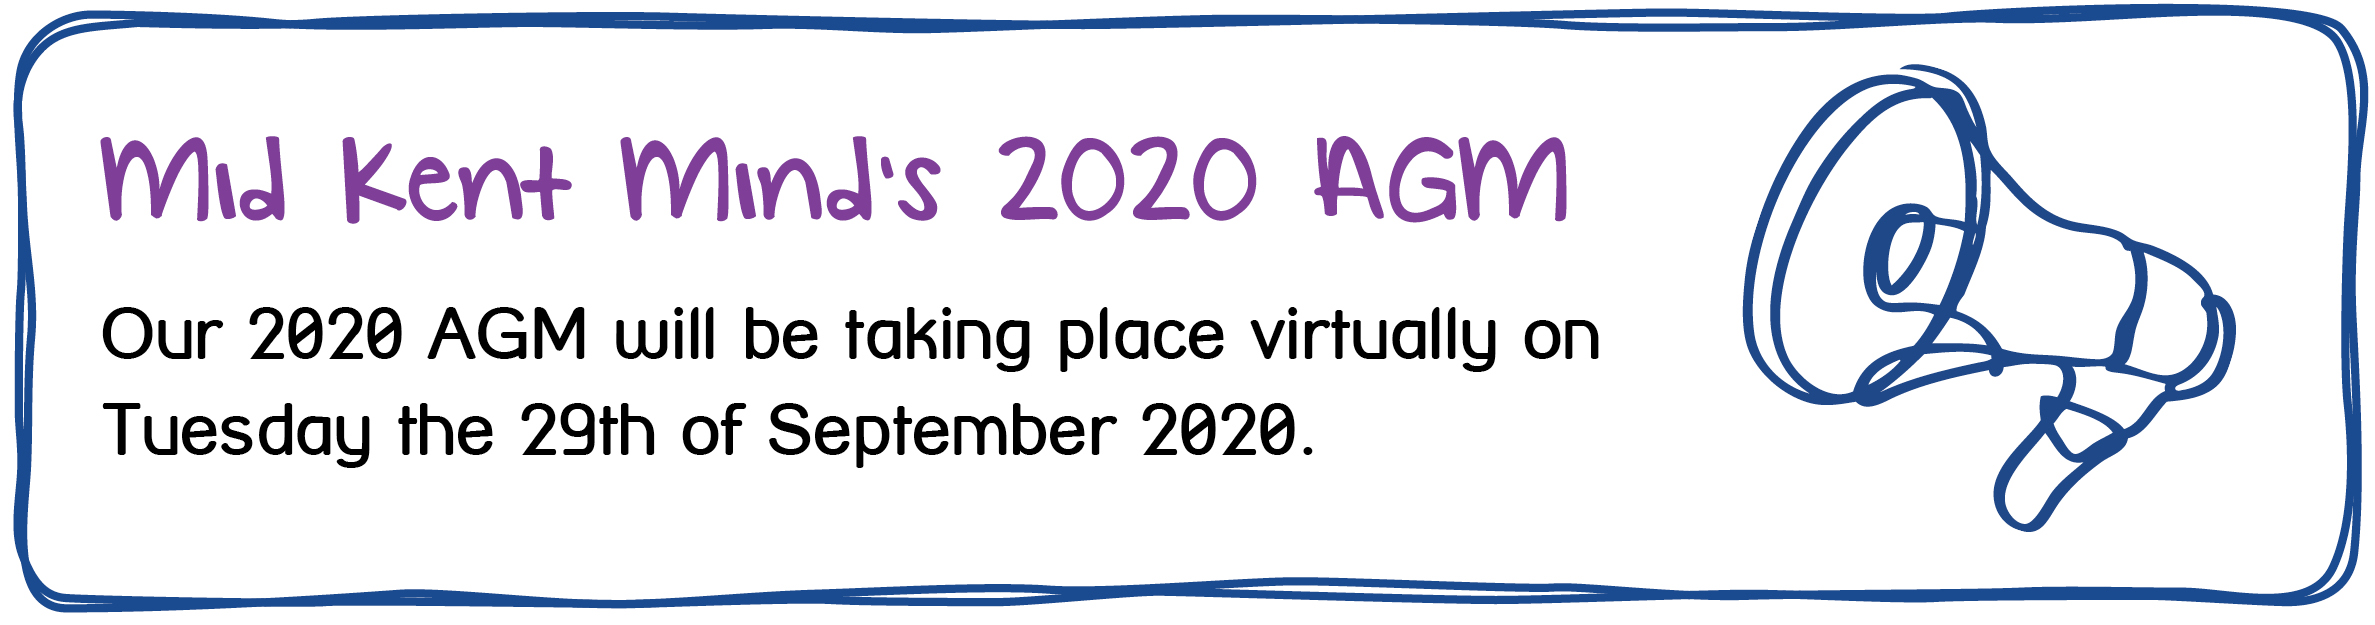 Mid Kent Mind's 2020 AGM. Our 2020 AGM will be taking place virtually on Tuesday the 29th of September 2020.